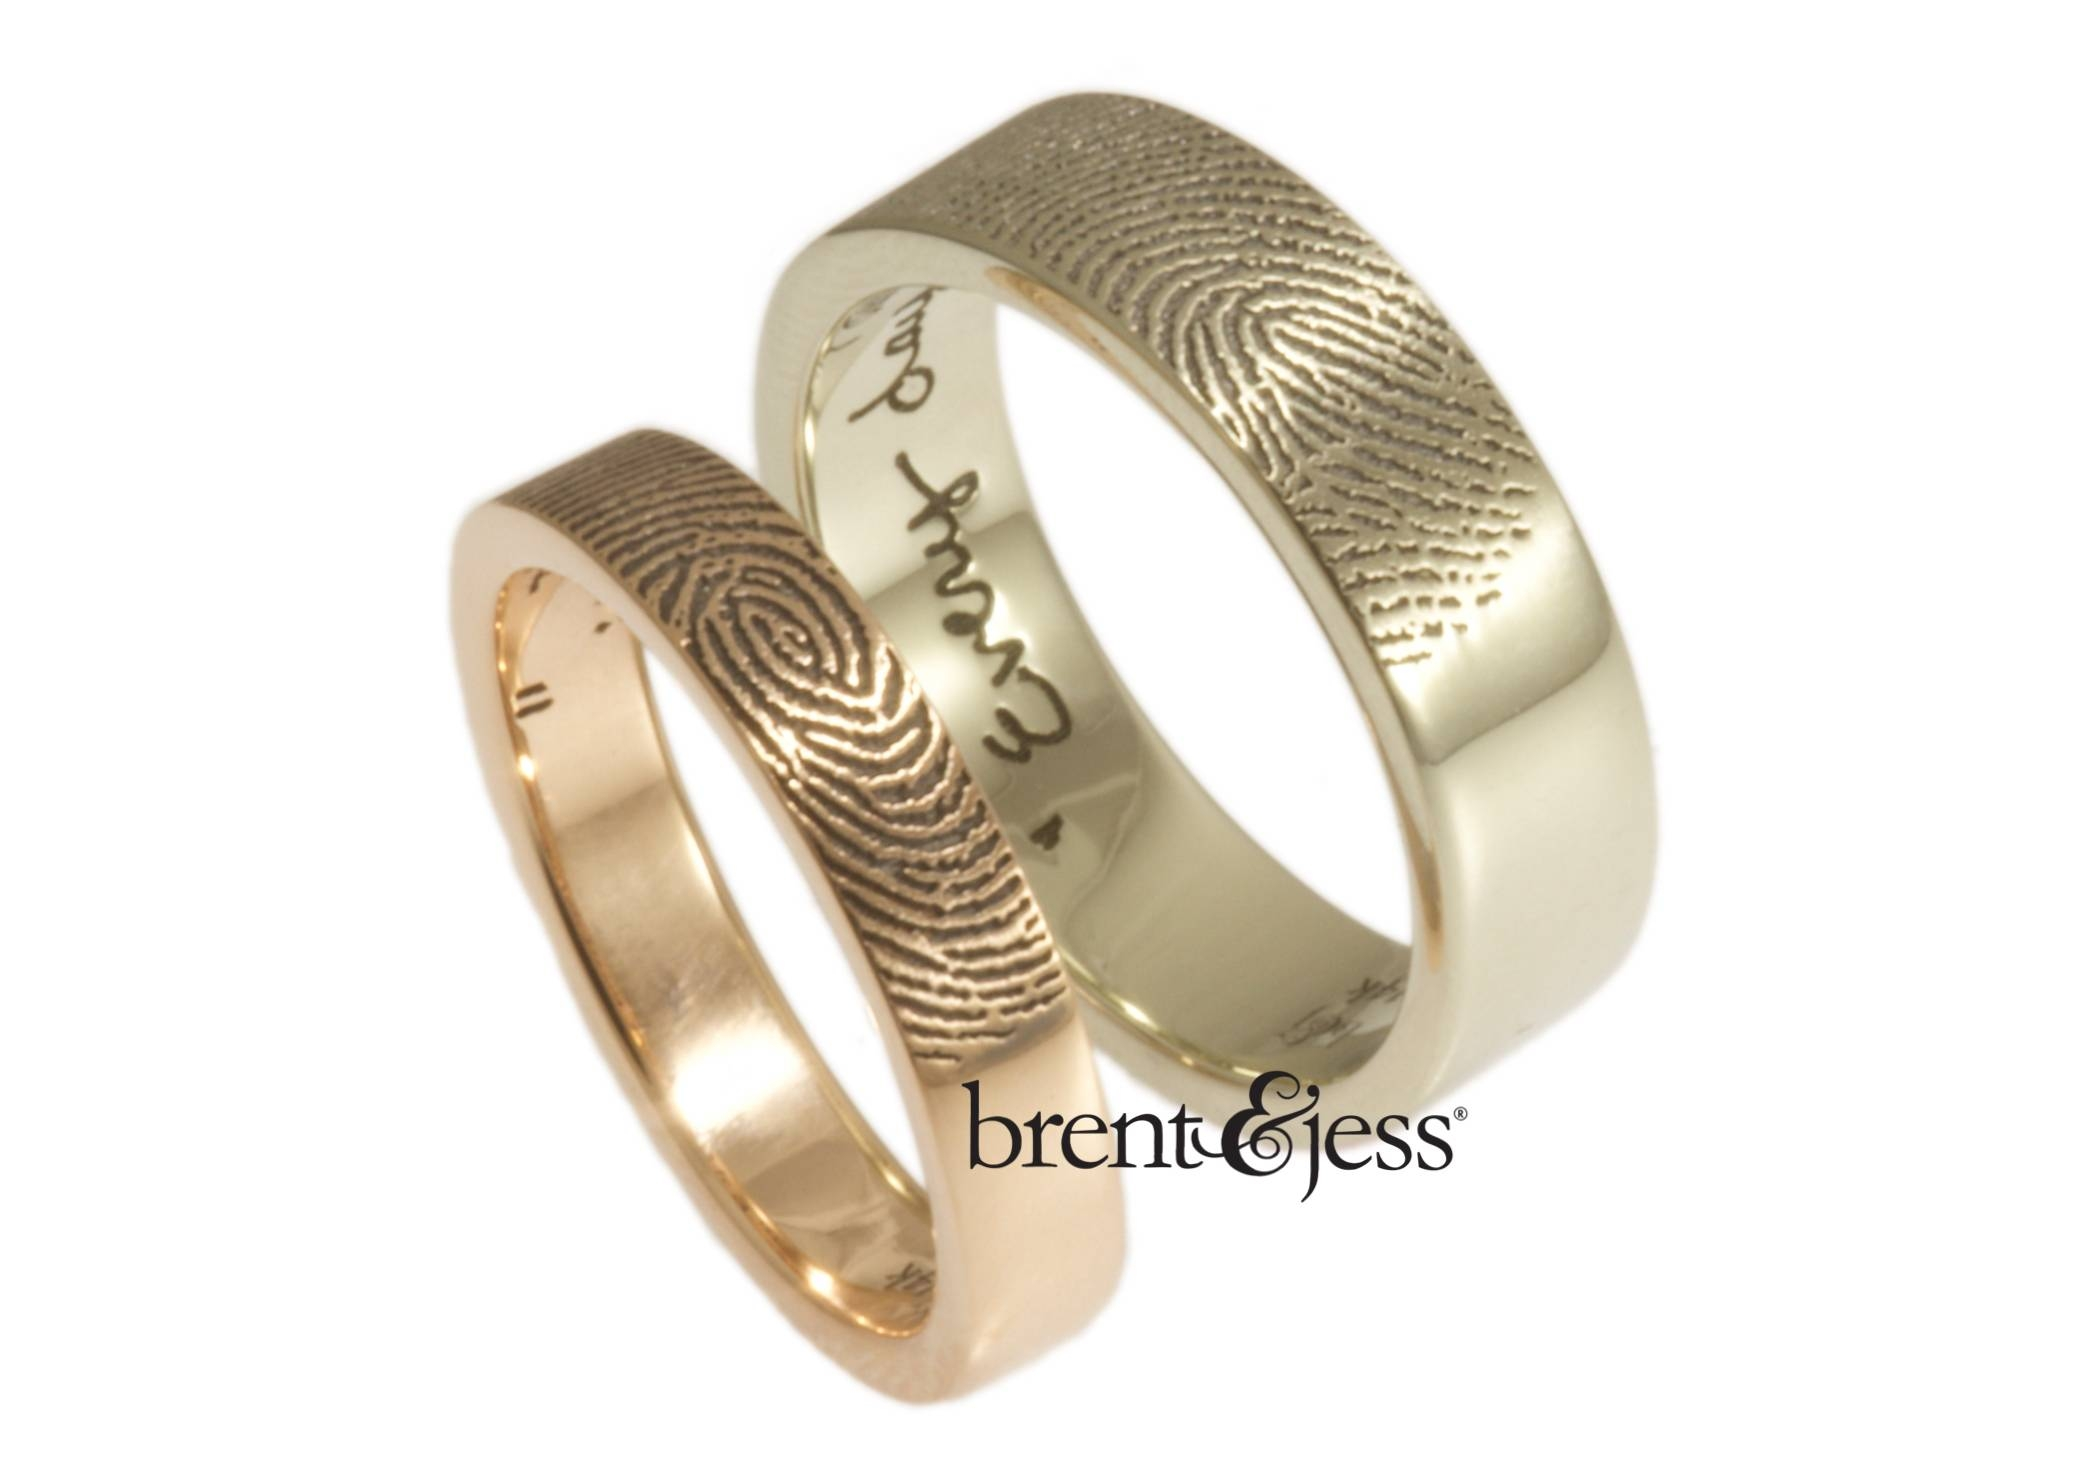 Brent&jess Fingerprint Wedding Rings · Ruffled In Fingerprint Wedding Rings (View 1 of 15)